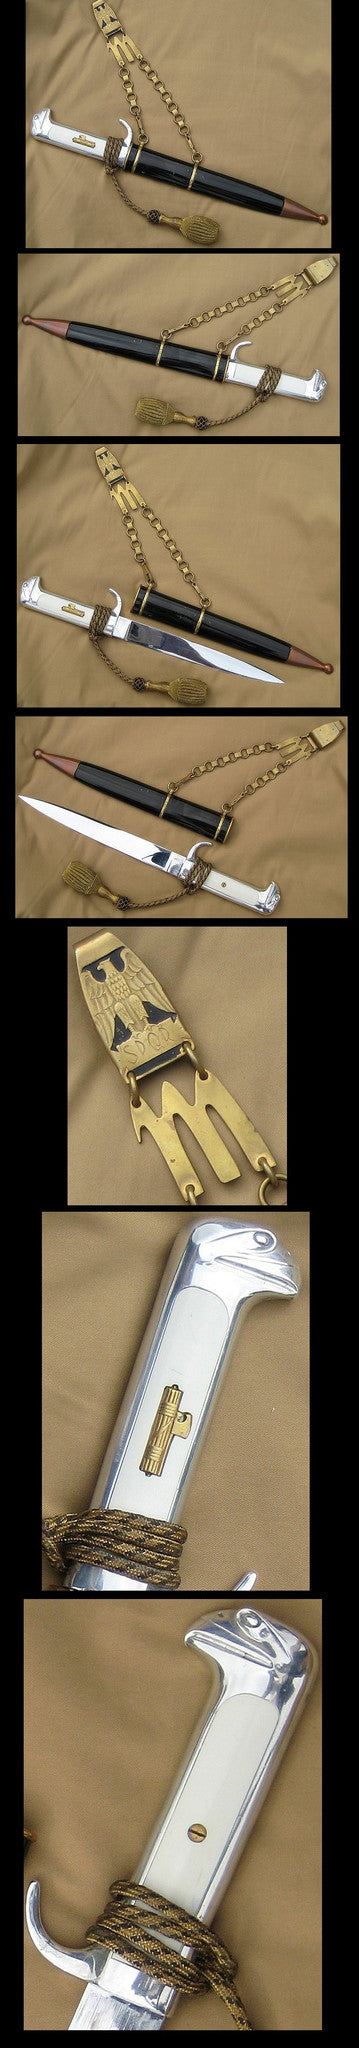 MVSN Fascist High Command/Generals Dress Dagger, model 1937, Mint +. Extremely Rare! - J.V. Bond Company